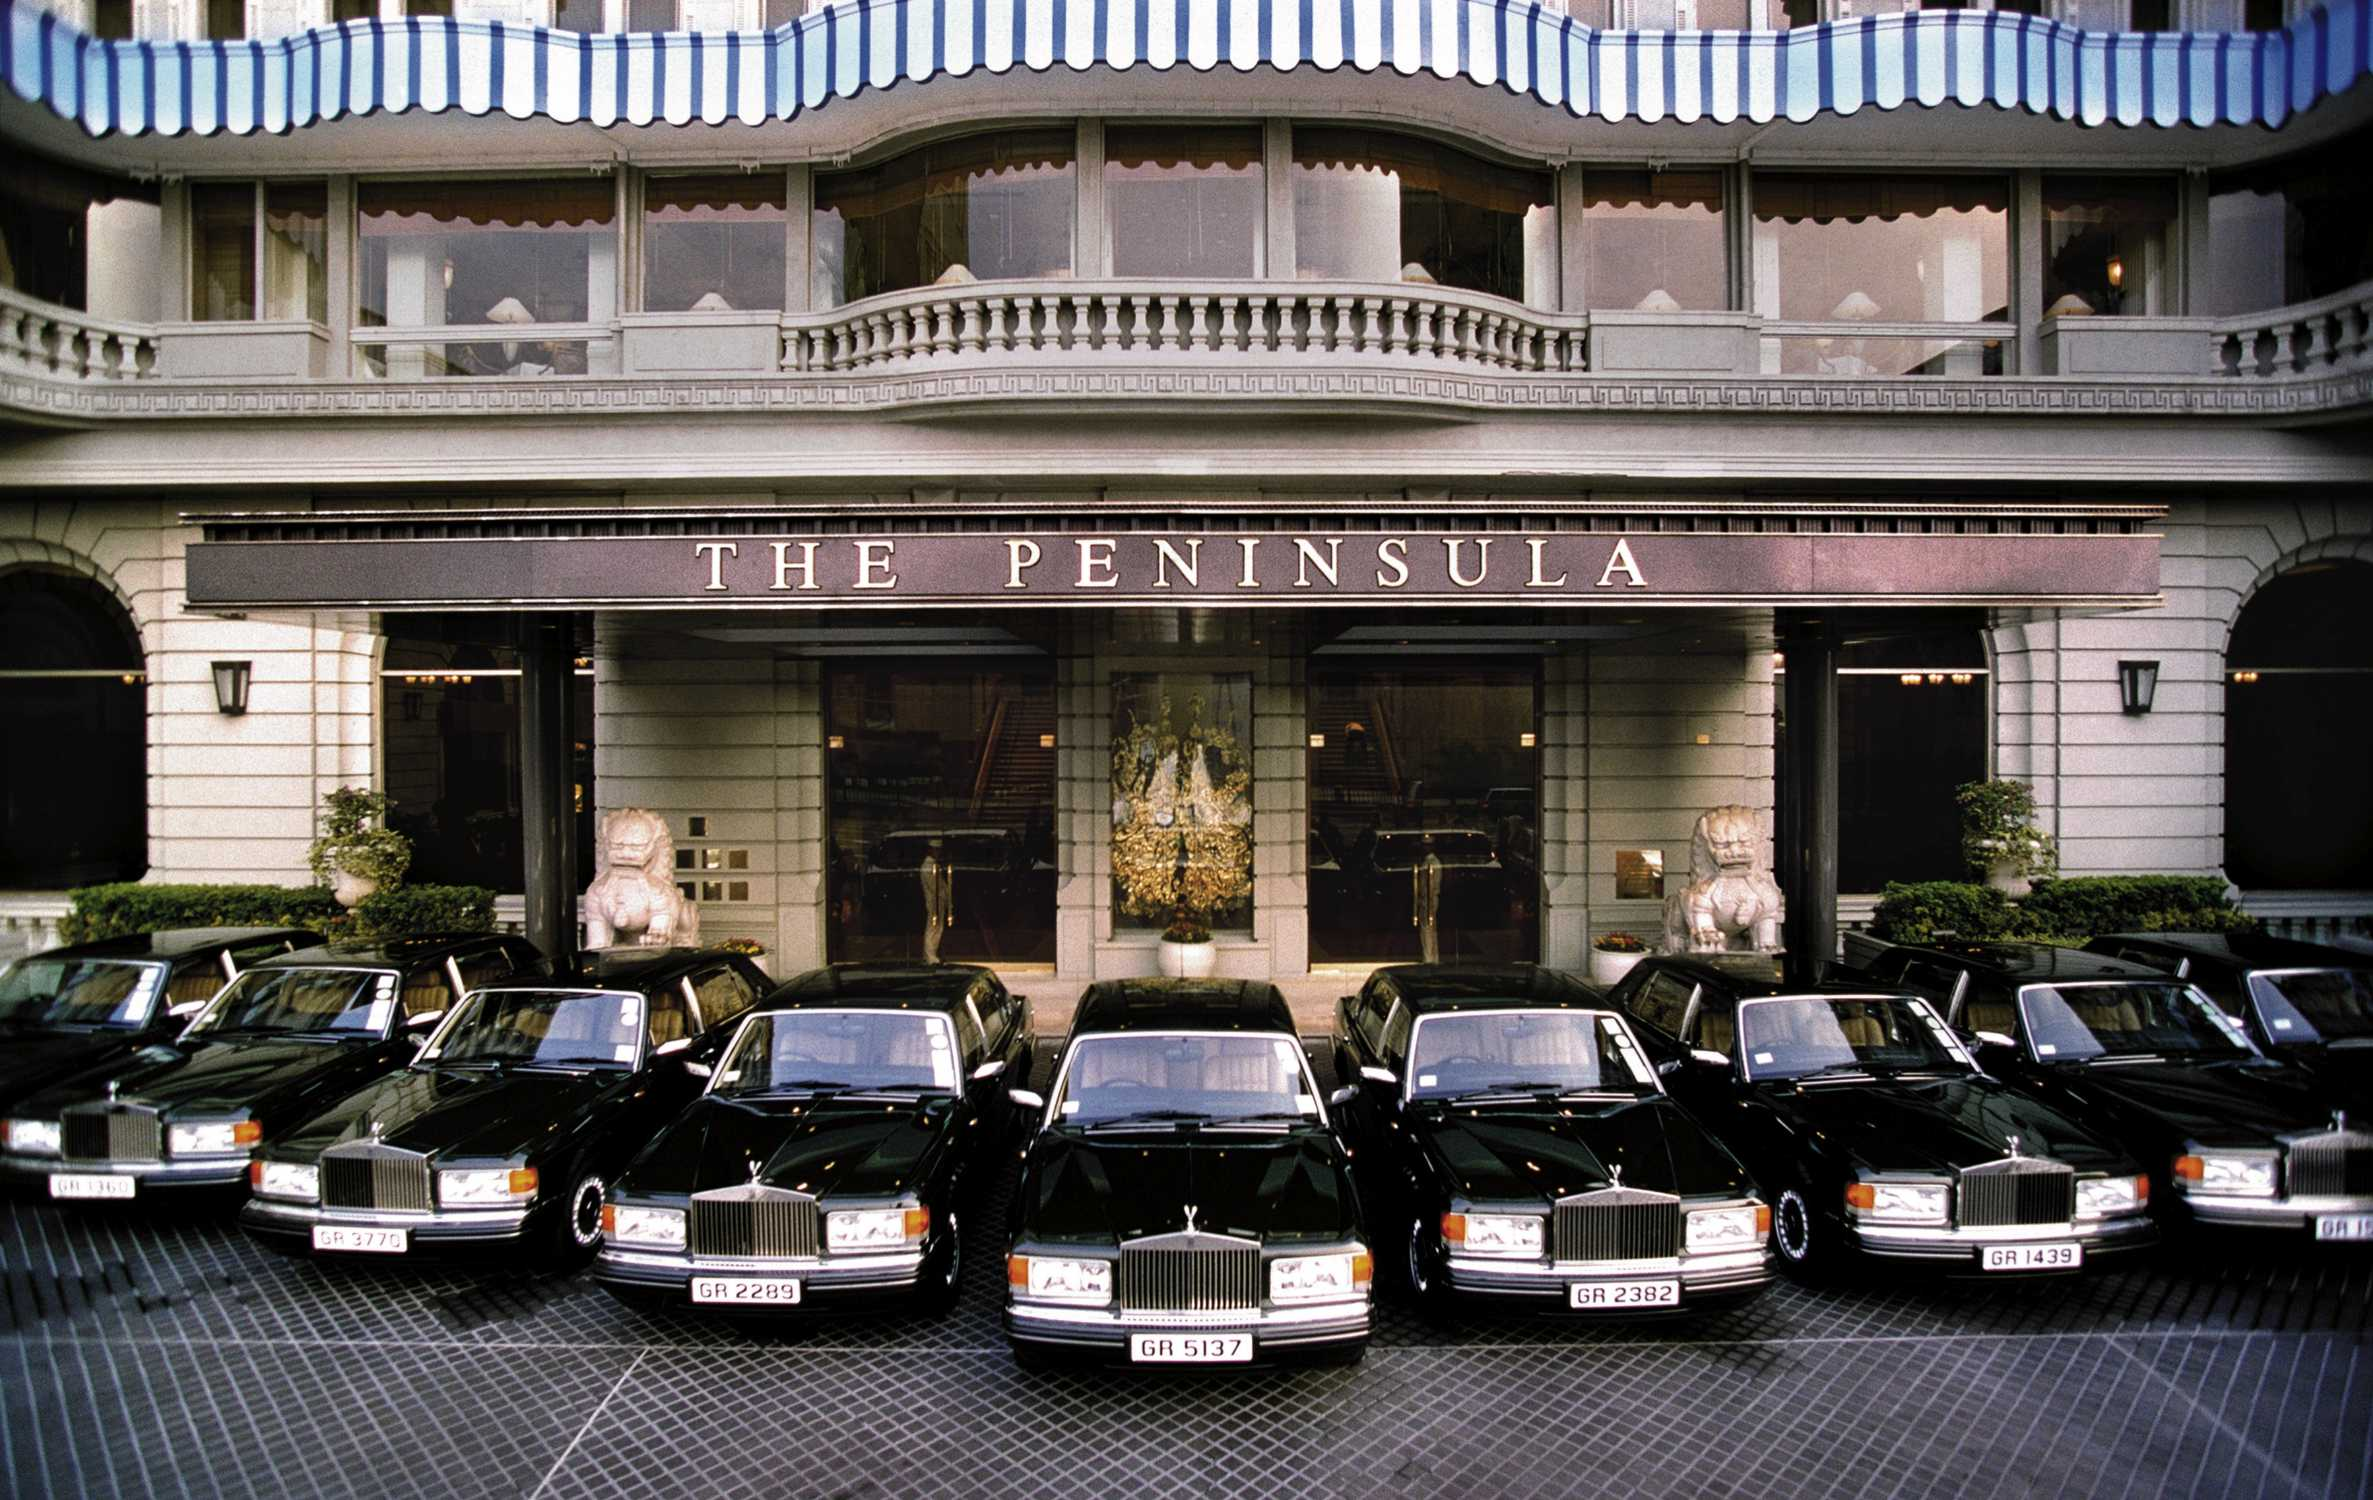 Rolls Royce Silver Spur Cars For The Peninsula Hotel Hong